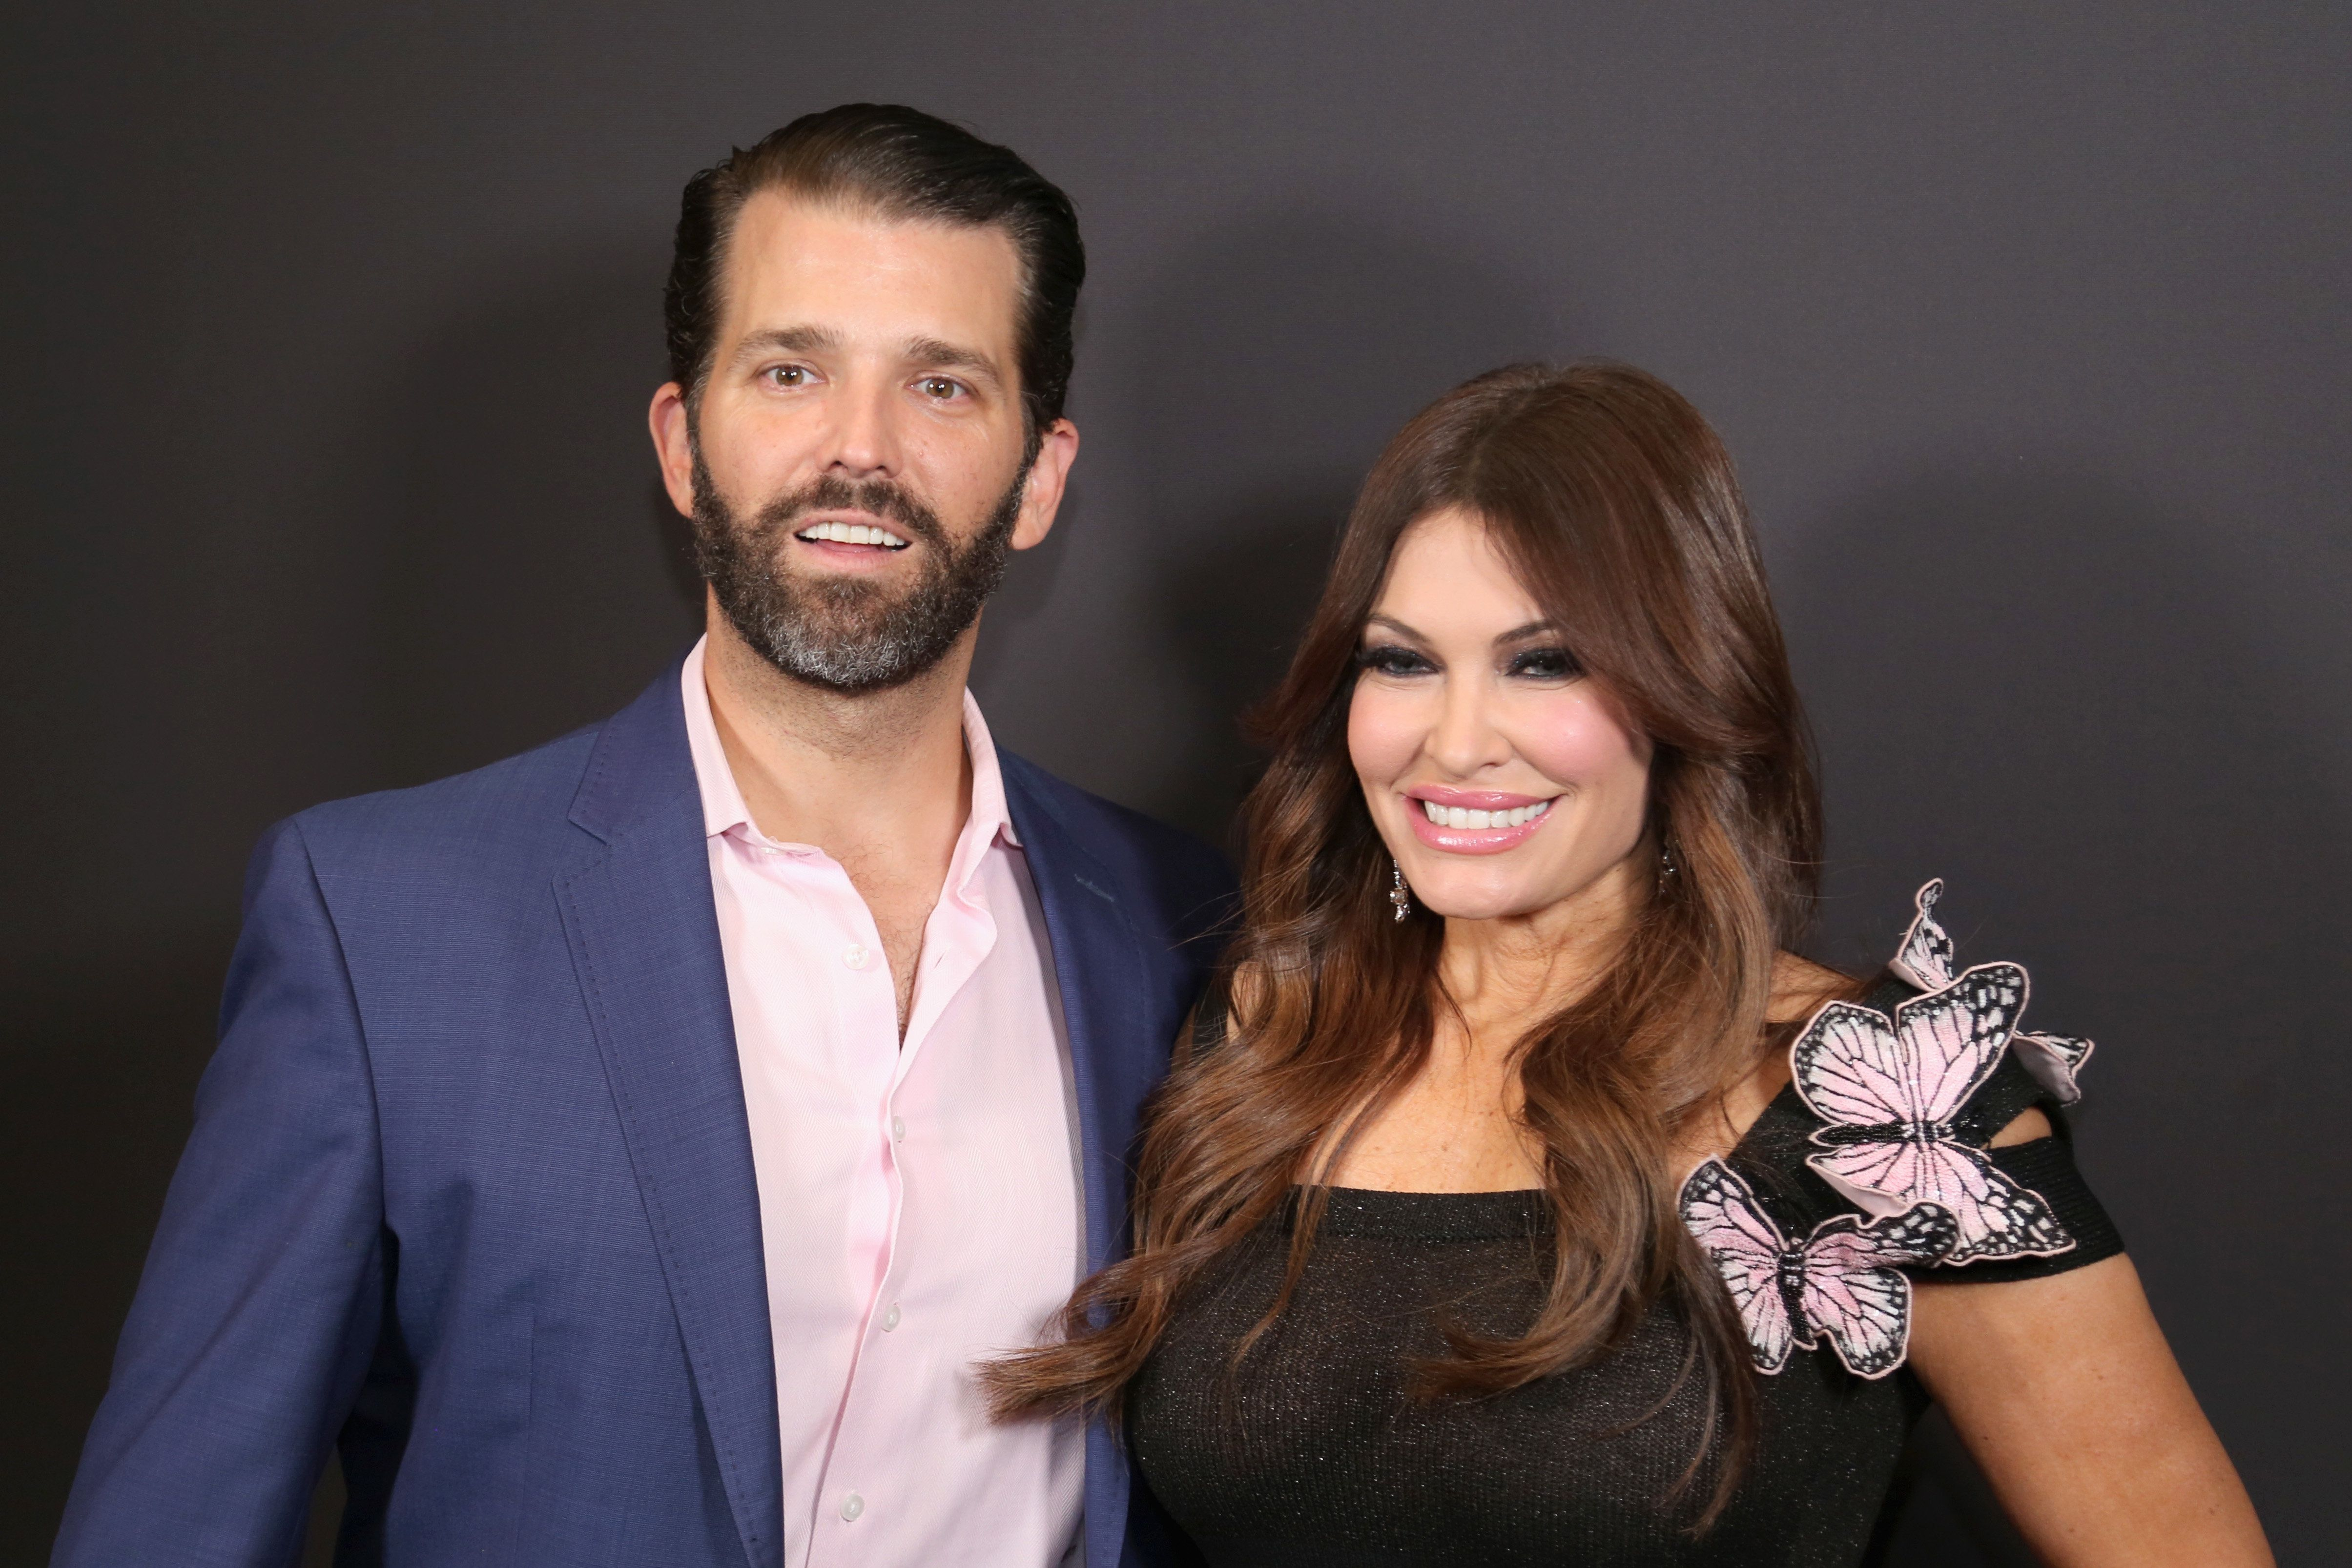 NEW YORK, NY - FEBRUARY 13: Donald Trump Jr. and Kimberly Guilfoyle pose backstage Gallery II in Spring Studios after the Zang Toi runway show during New York Fashion Week: The Shows at Spring Studios on February 13, 2019 in New York City.  (Photo by Manny Carabel/Getty Images)